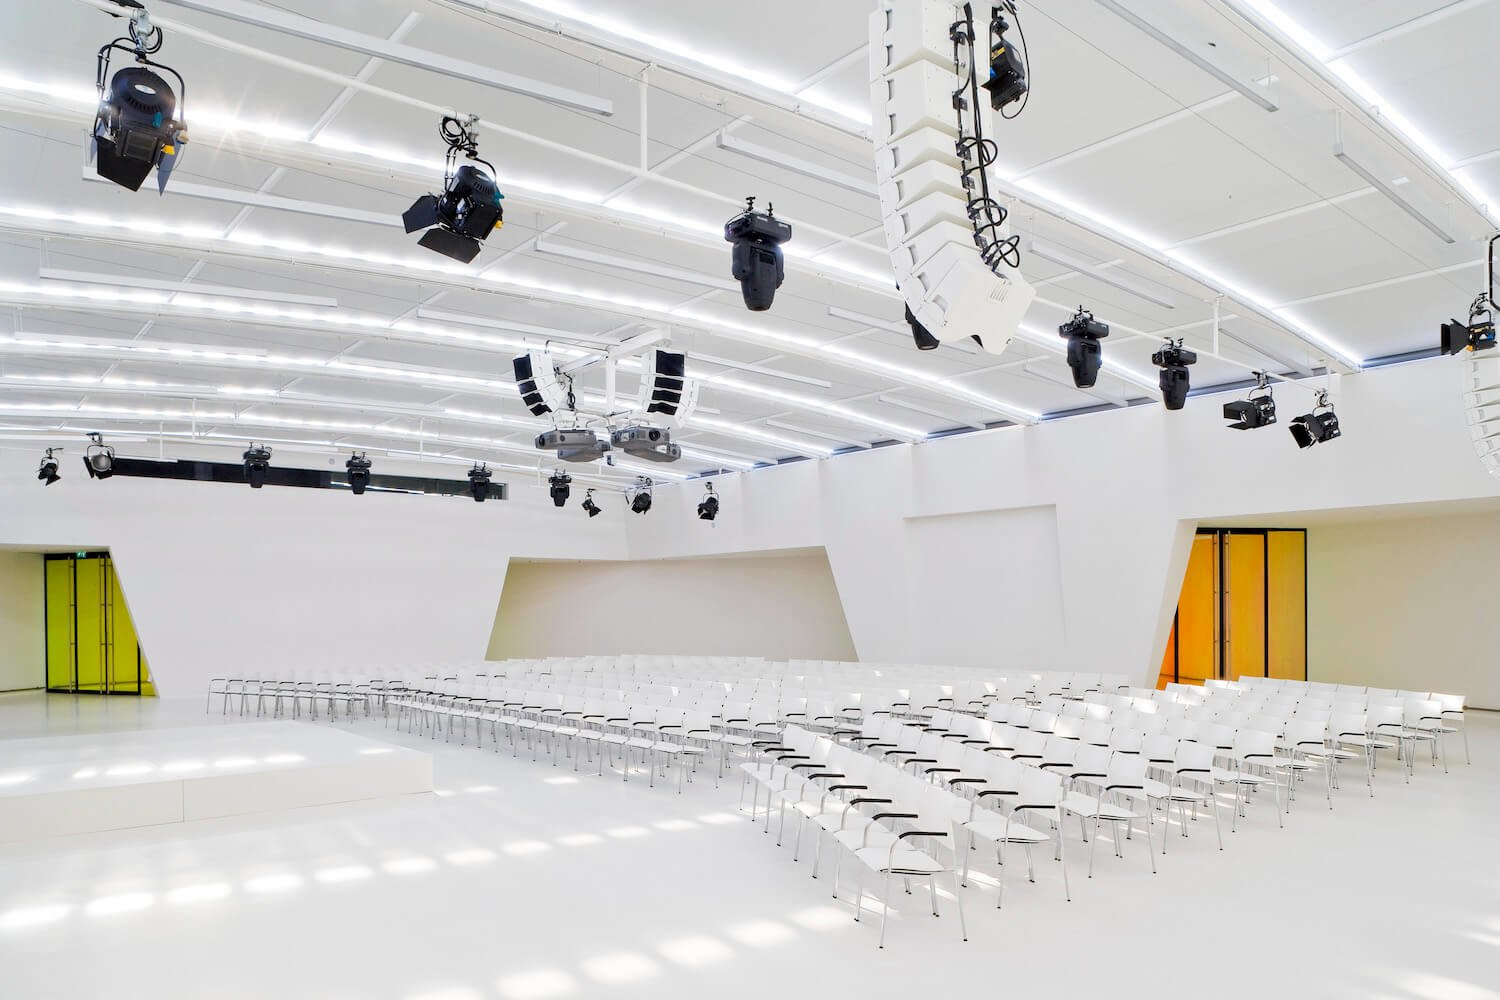 The main conference hall of Media Plaza seats 700 people. It is positioned centrally and is surrounded by 7 meeting rooms